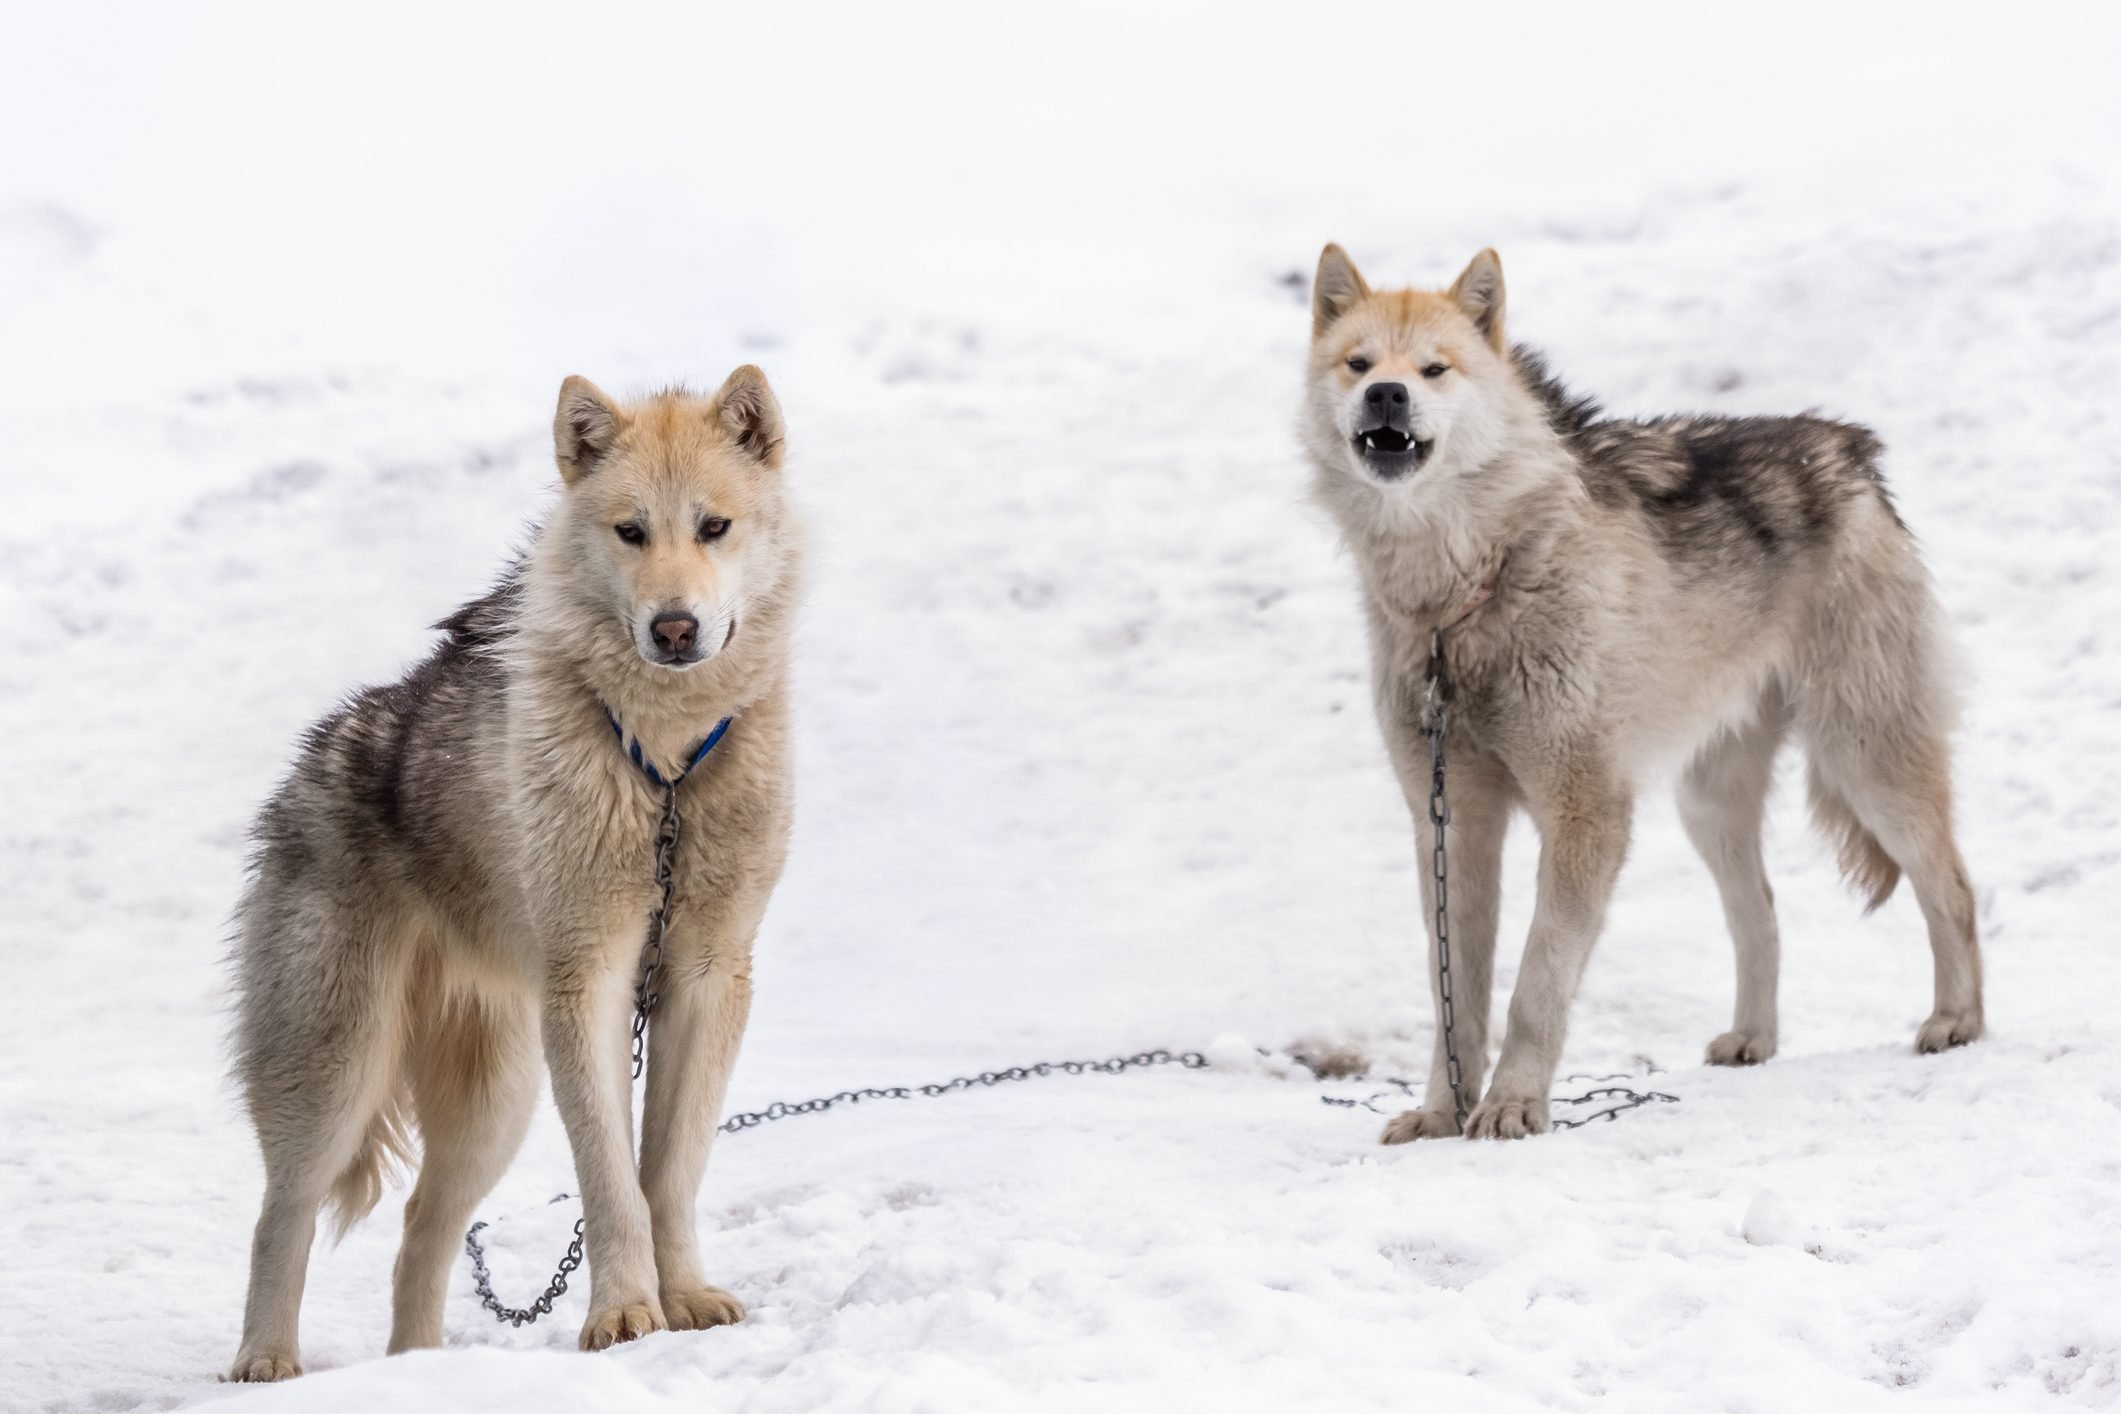 Two Greenlandic Inuit sledding dogs standing on alert in the snow, Sisimiut, Greenland